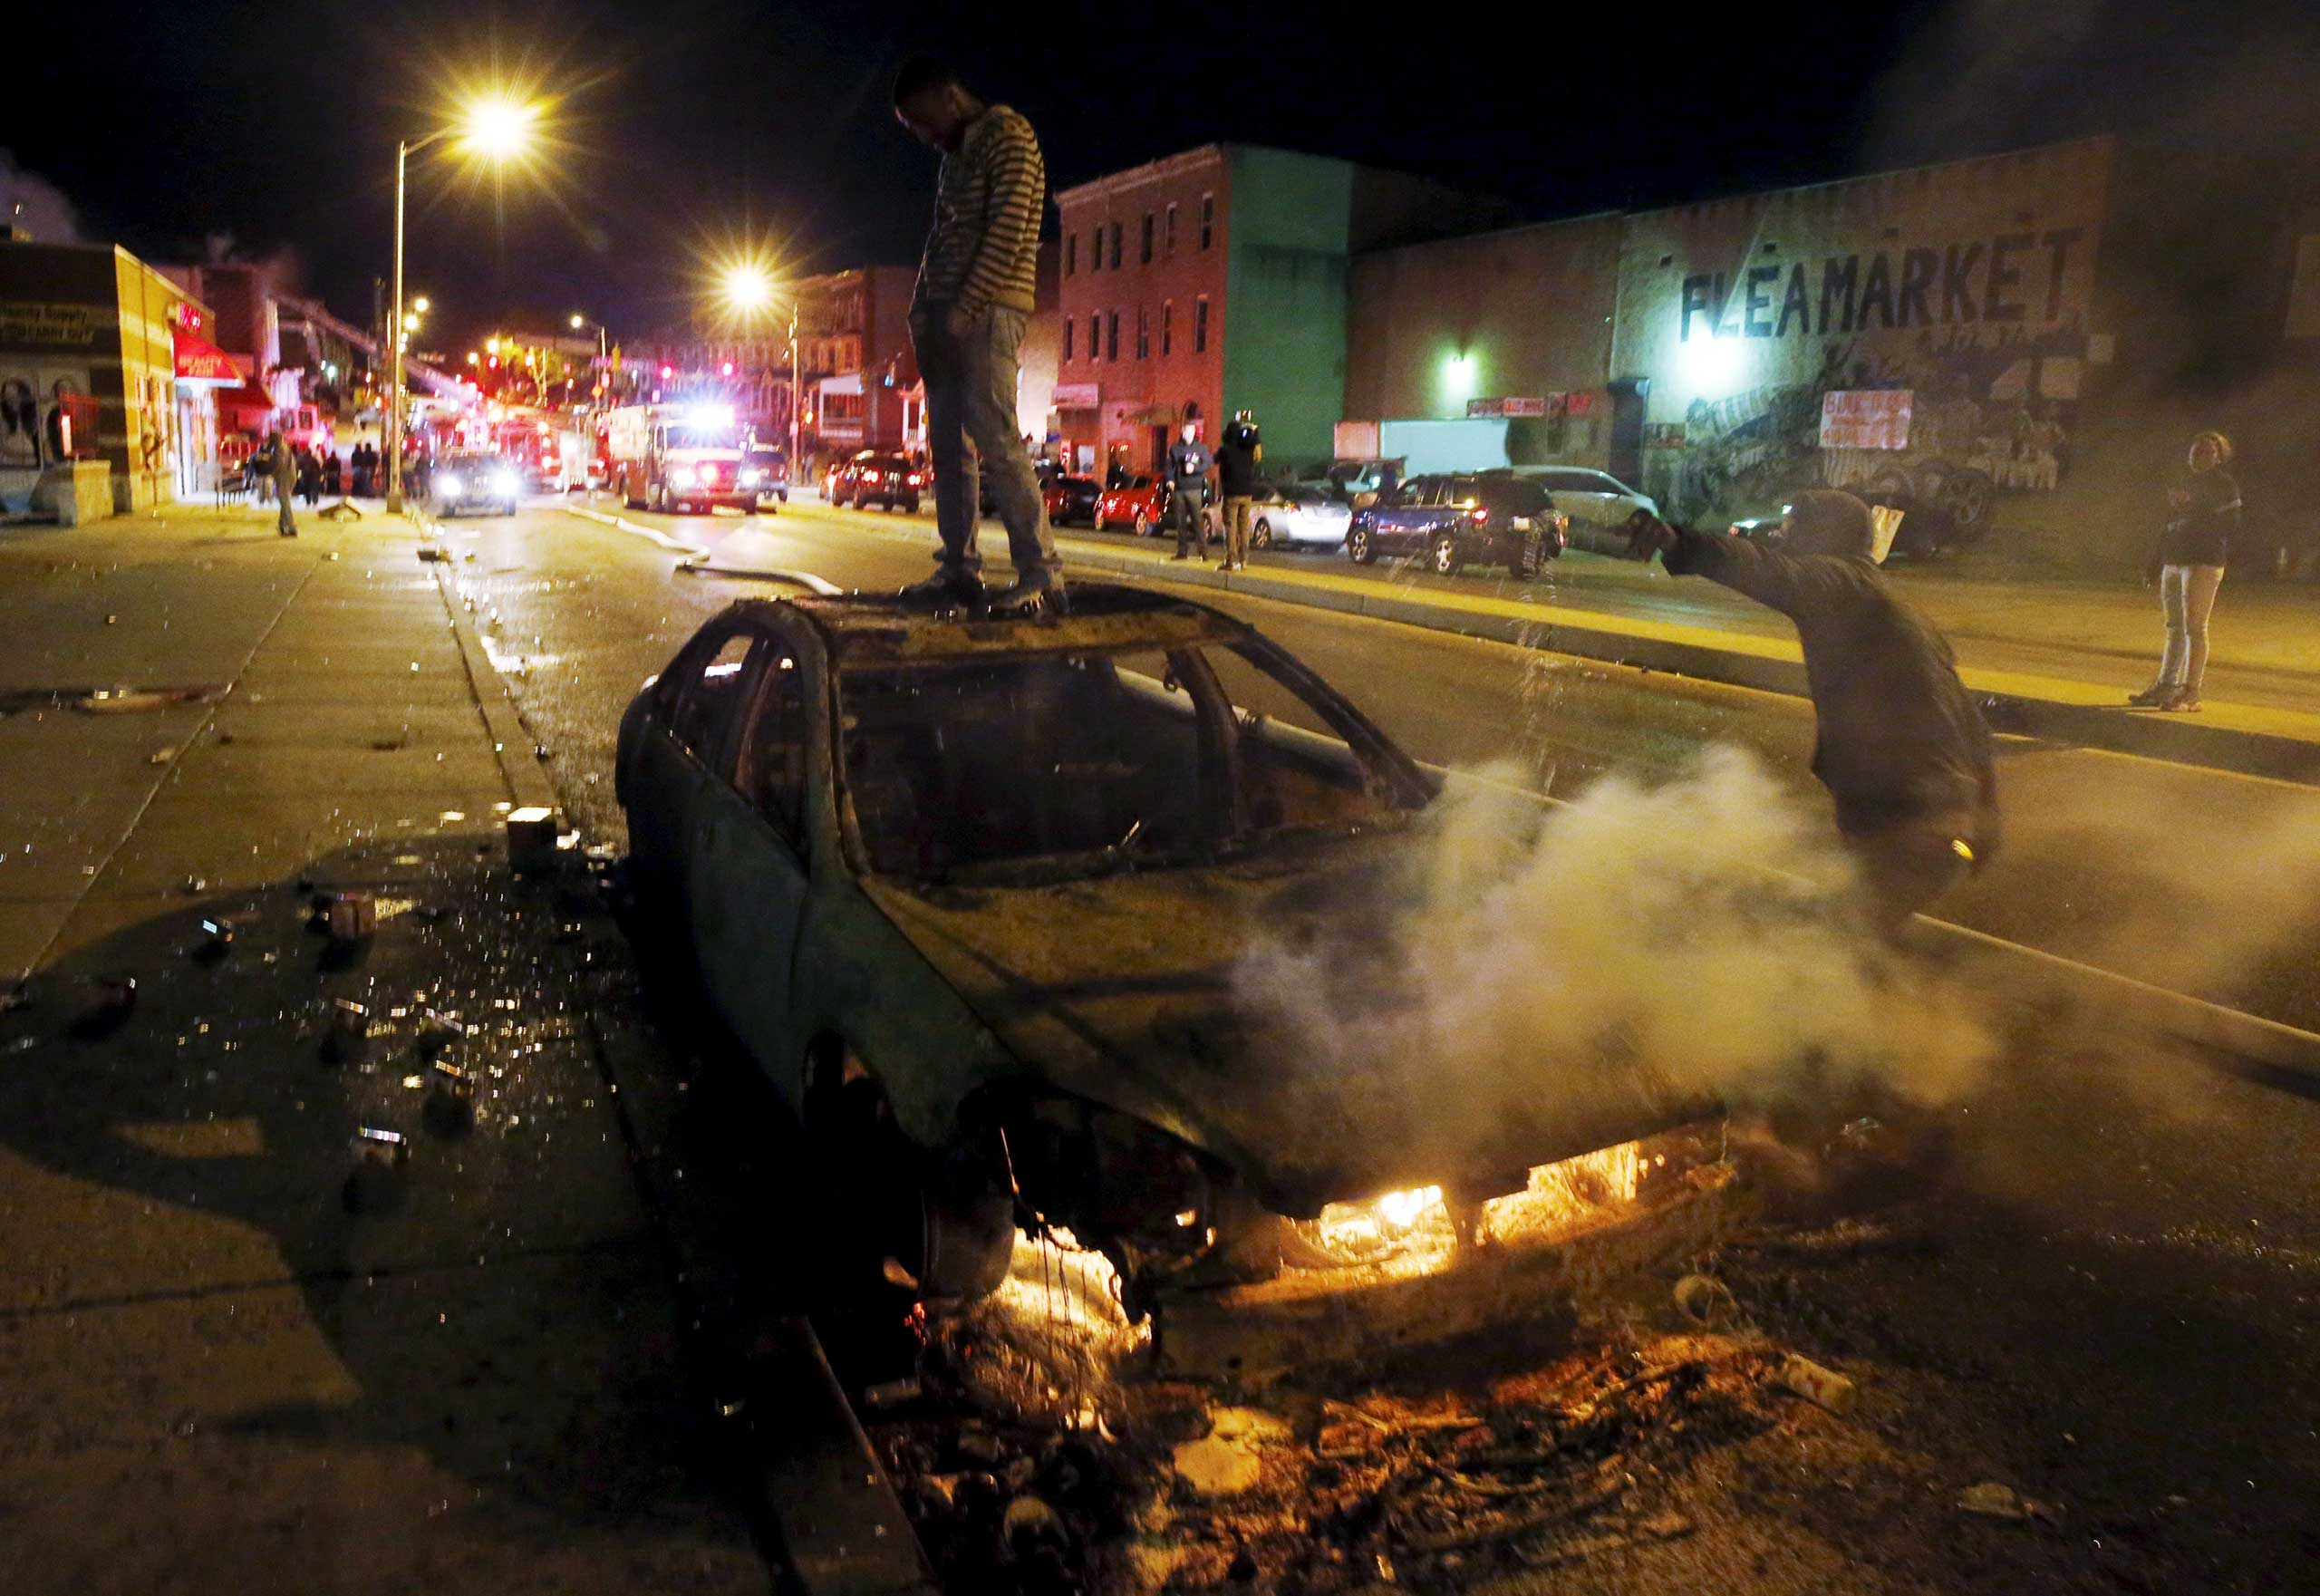 A rioter stands atop a burning car as another man pours fuel onto the fire while Baltimore firefighters behind them fight fires in multiple burning buildings set ablaze by rioters during clashes in Baltimore on April 27, 2015.